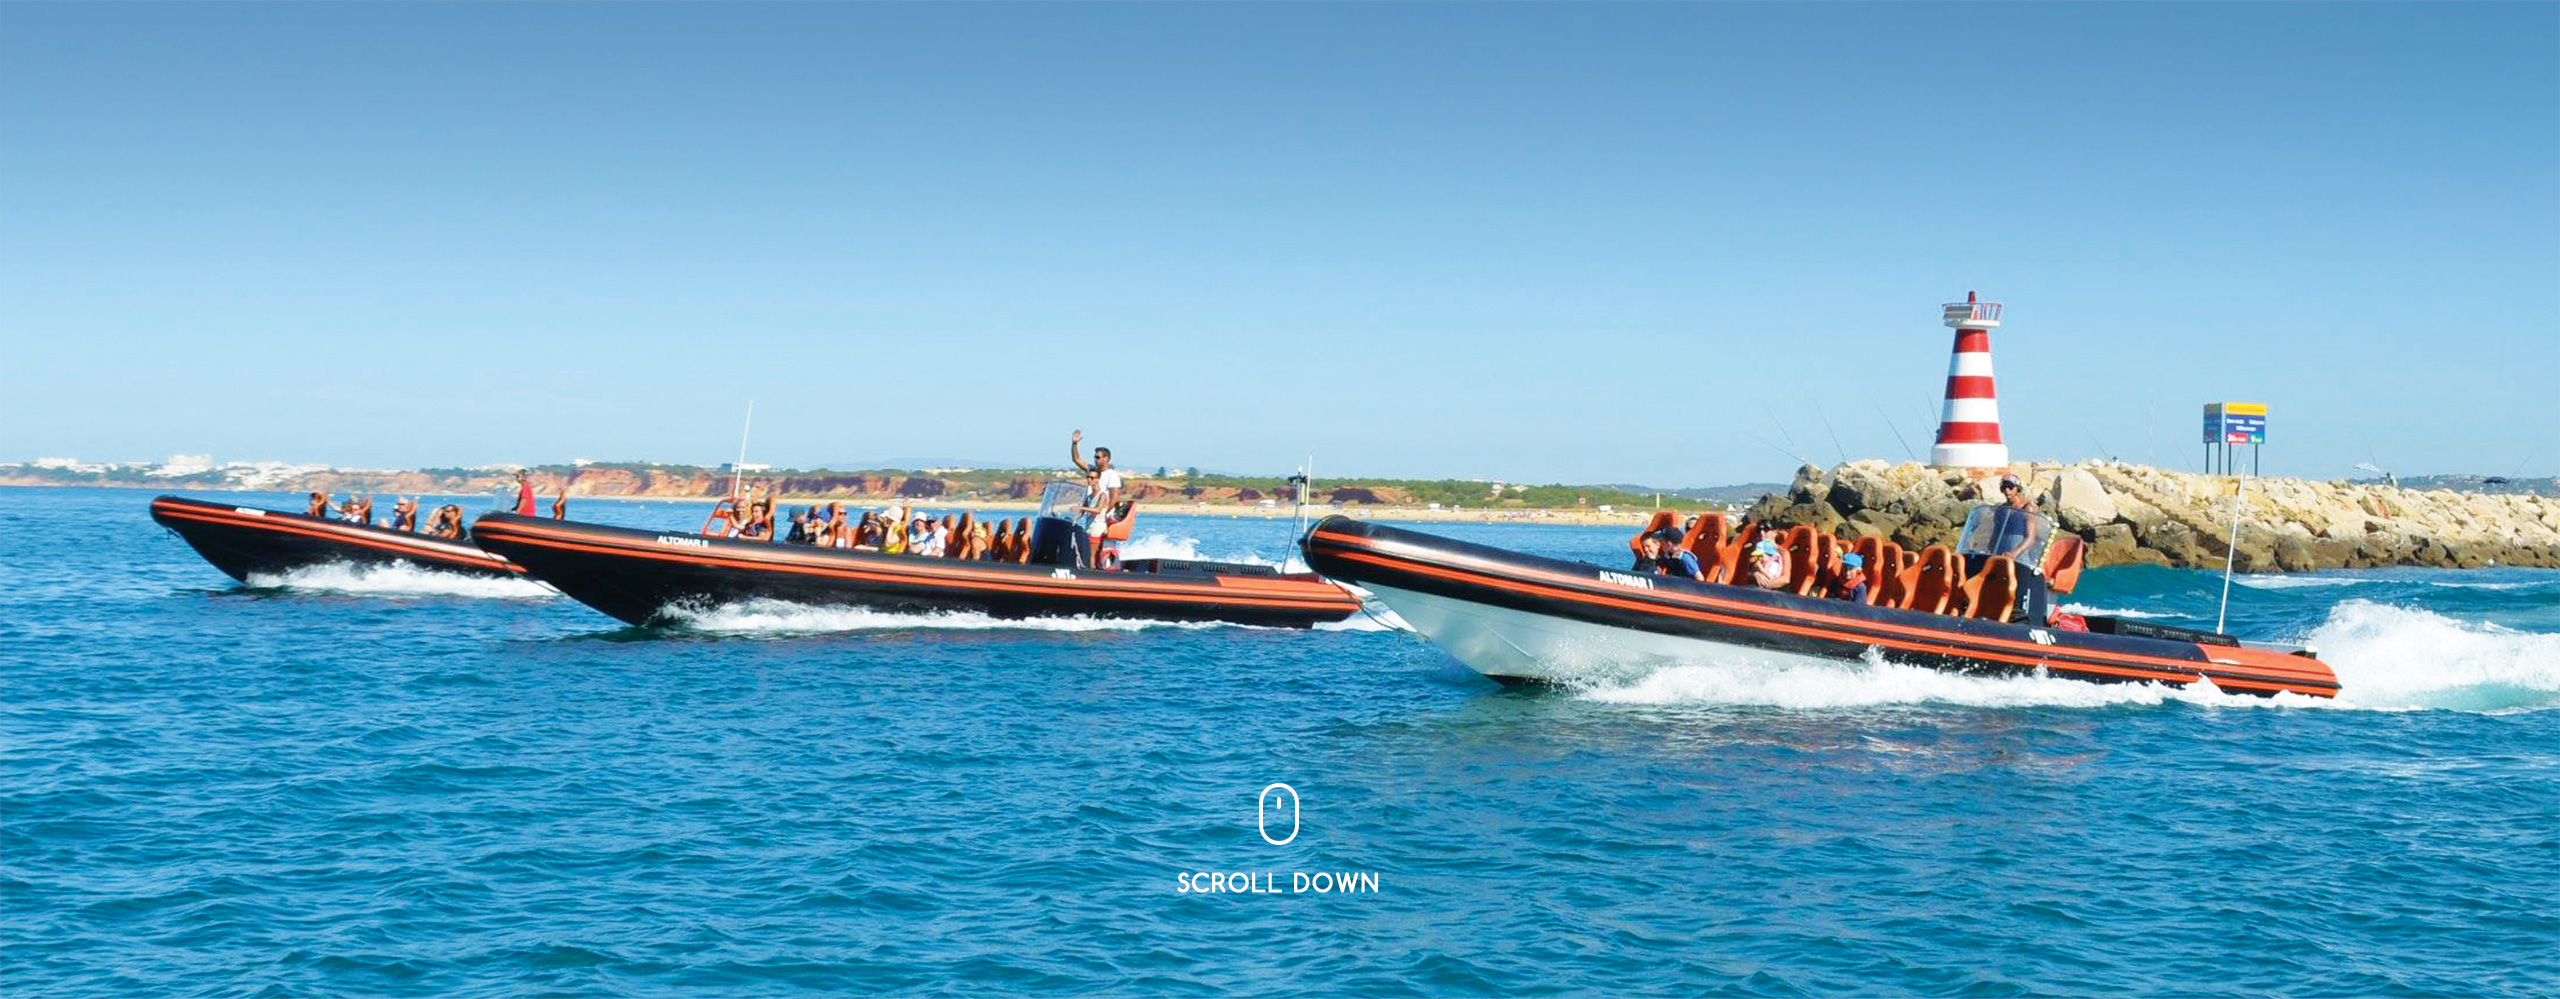 dolphin watching trips vilamoura algarve portugal